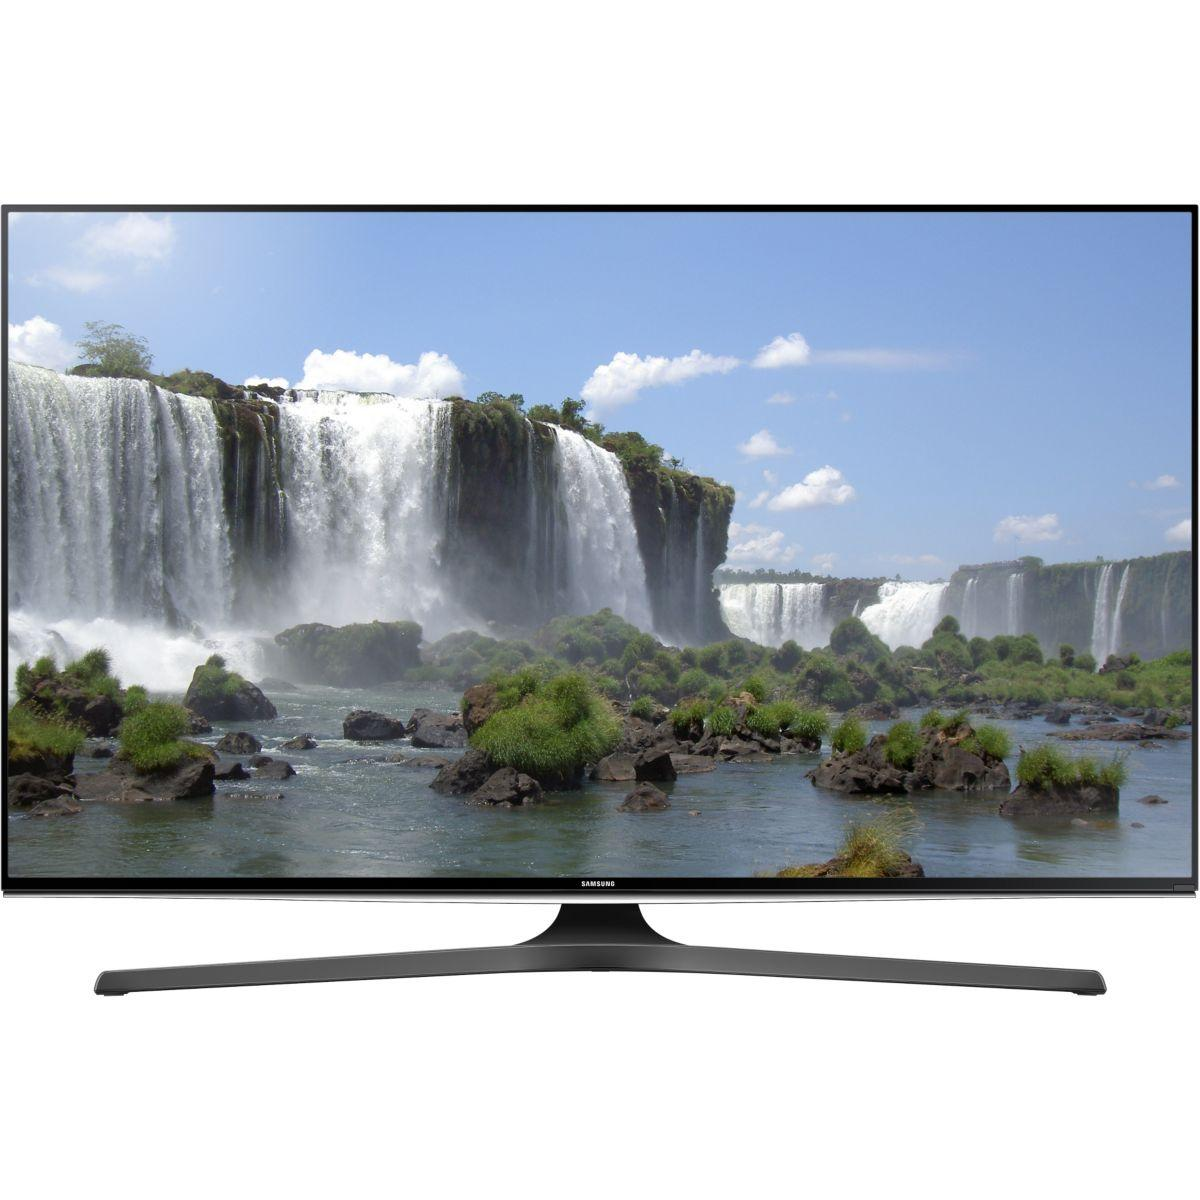 Tv samsung ue50j6240 700 pqi smart tv (photo)